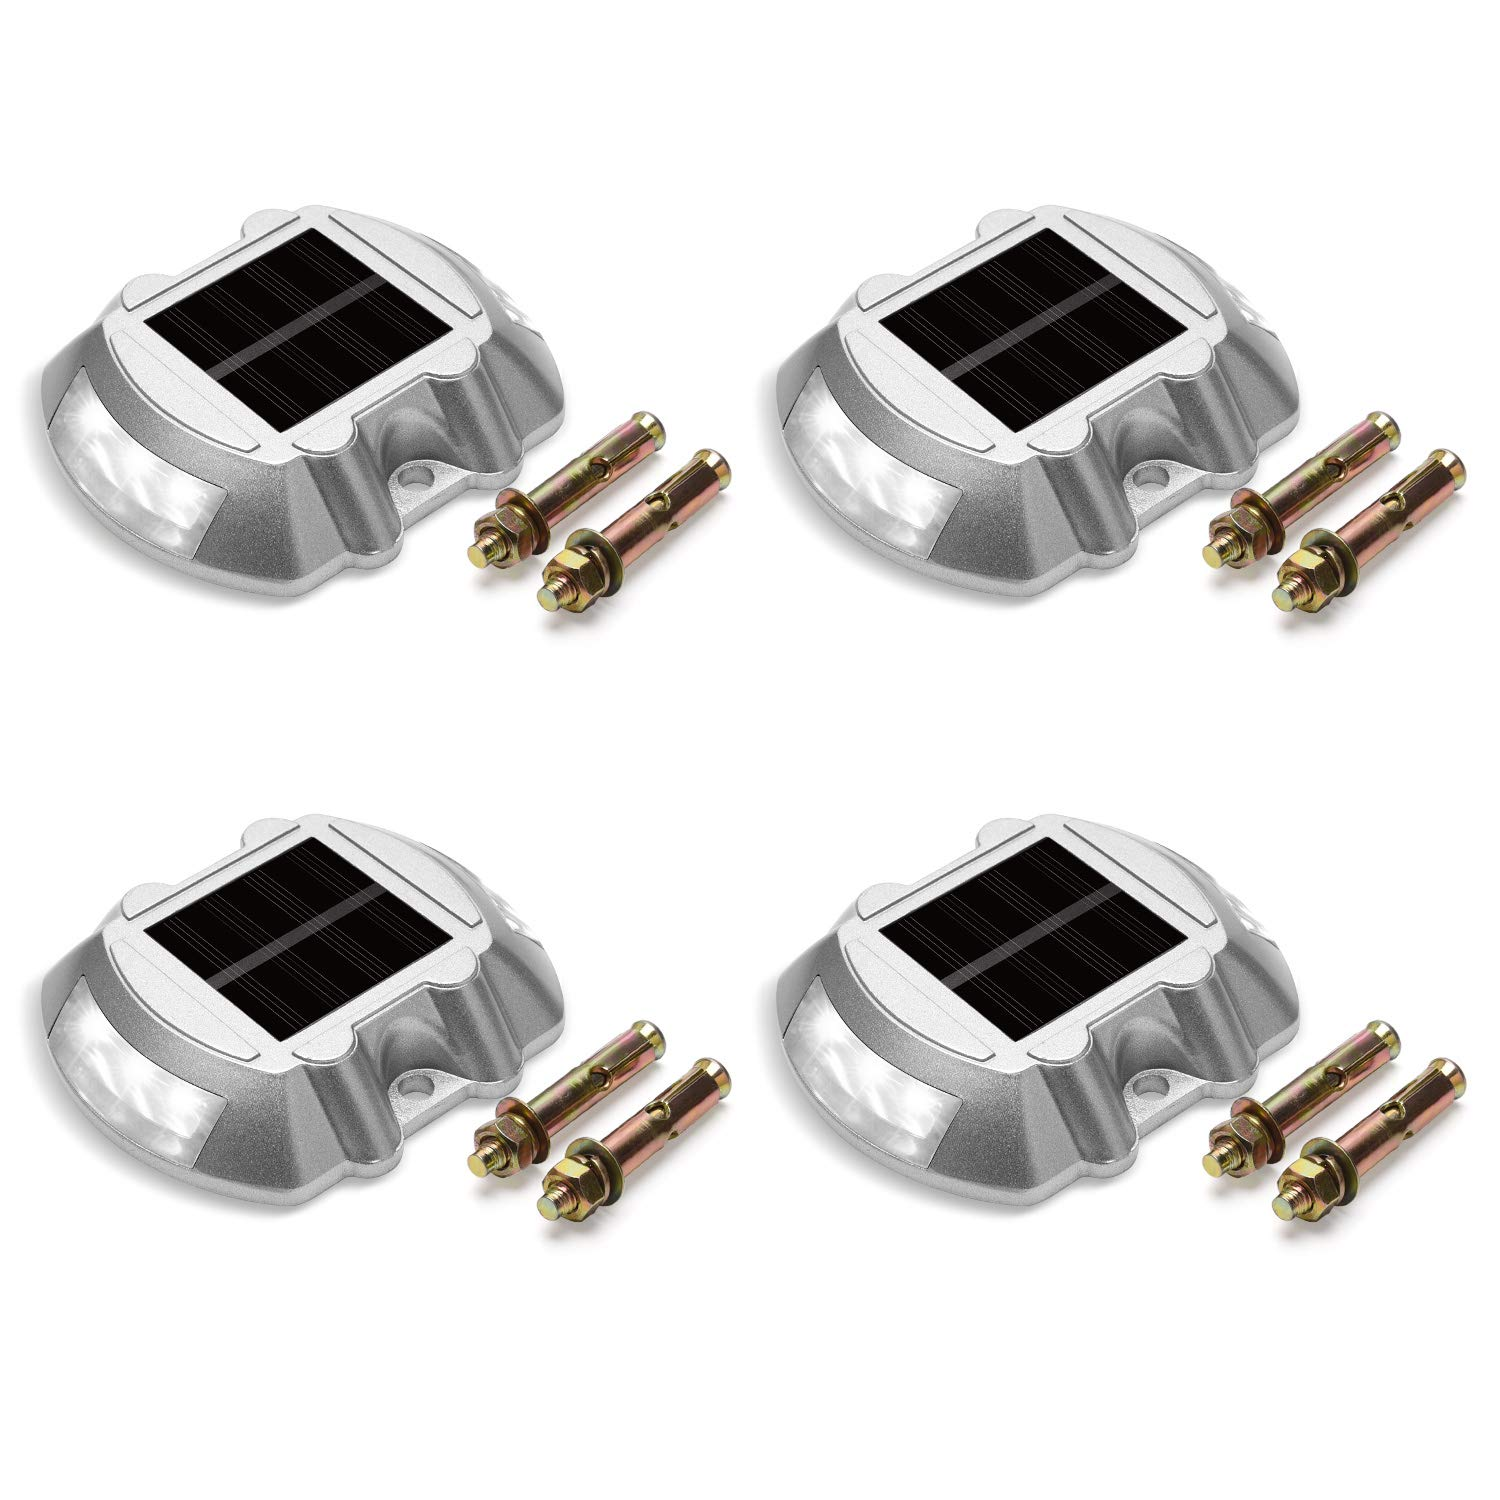 Solar Deck Lights 4-Pack JACKYLED Solar Dock Lights Path Road Long Service Time LED Light Bright White Weatherproof Wireless Outdoor Warning Step Lights for Driveway Garden Walkway Backyard Step by JACKYLED